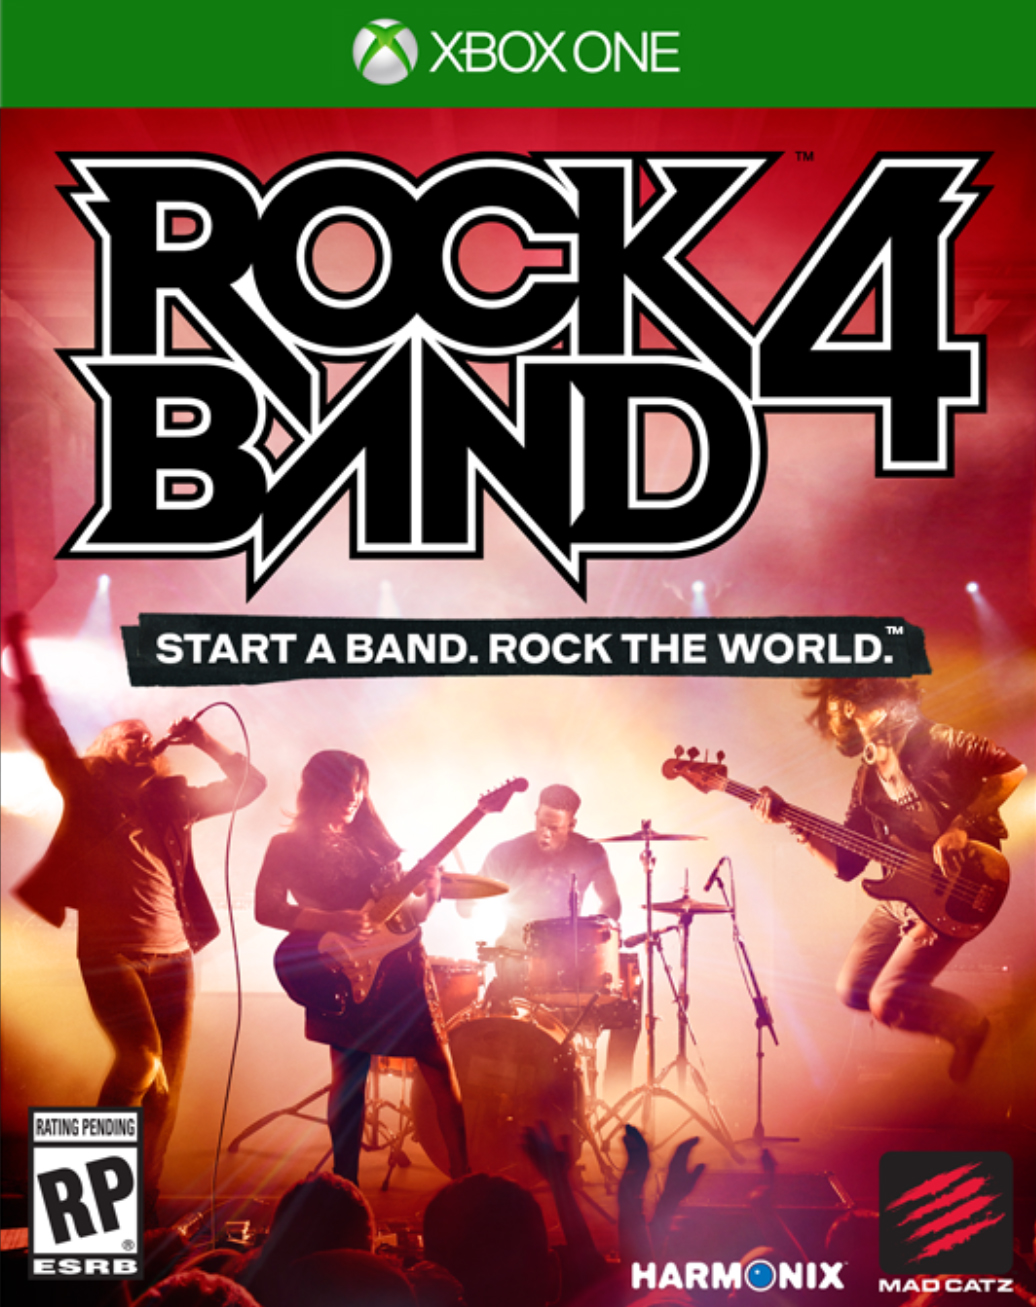 Rock Band 4 Rivals Xbox One Box Art